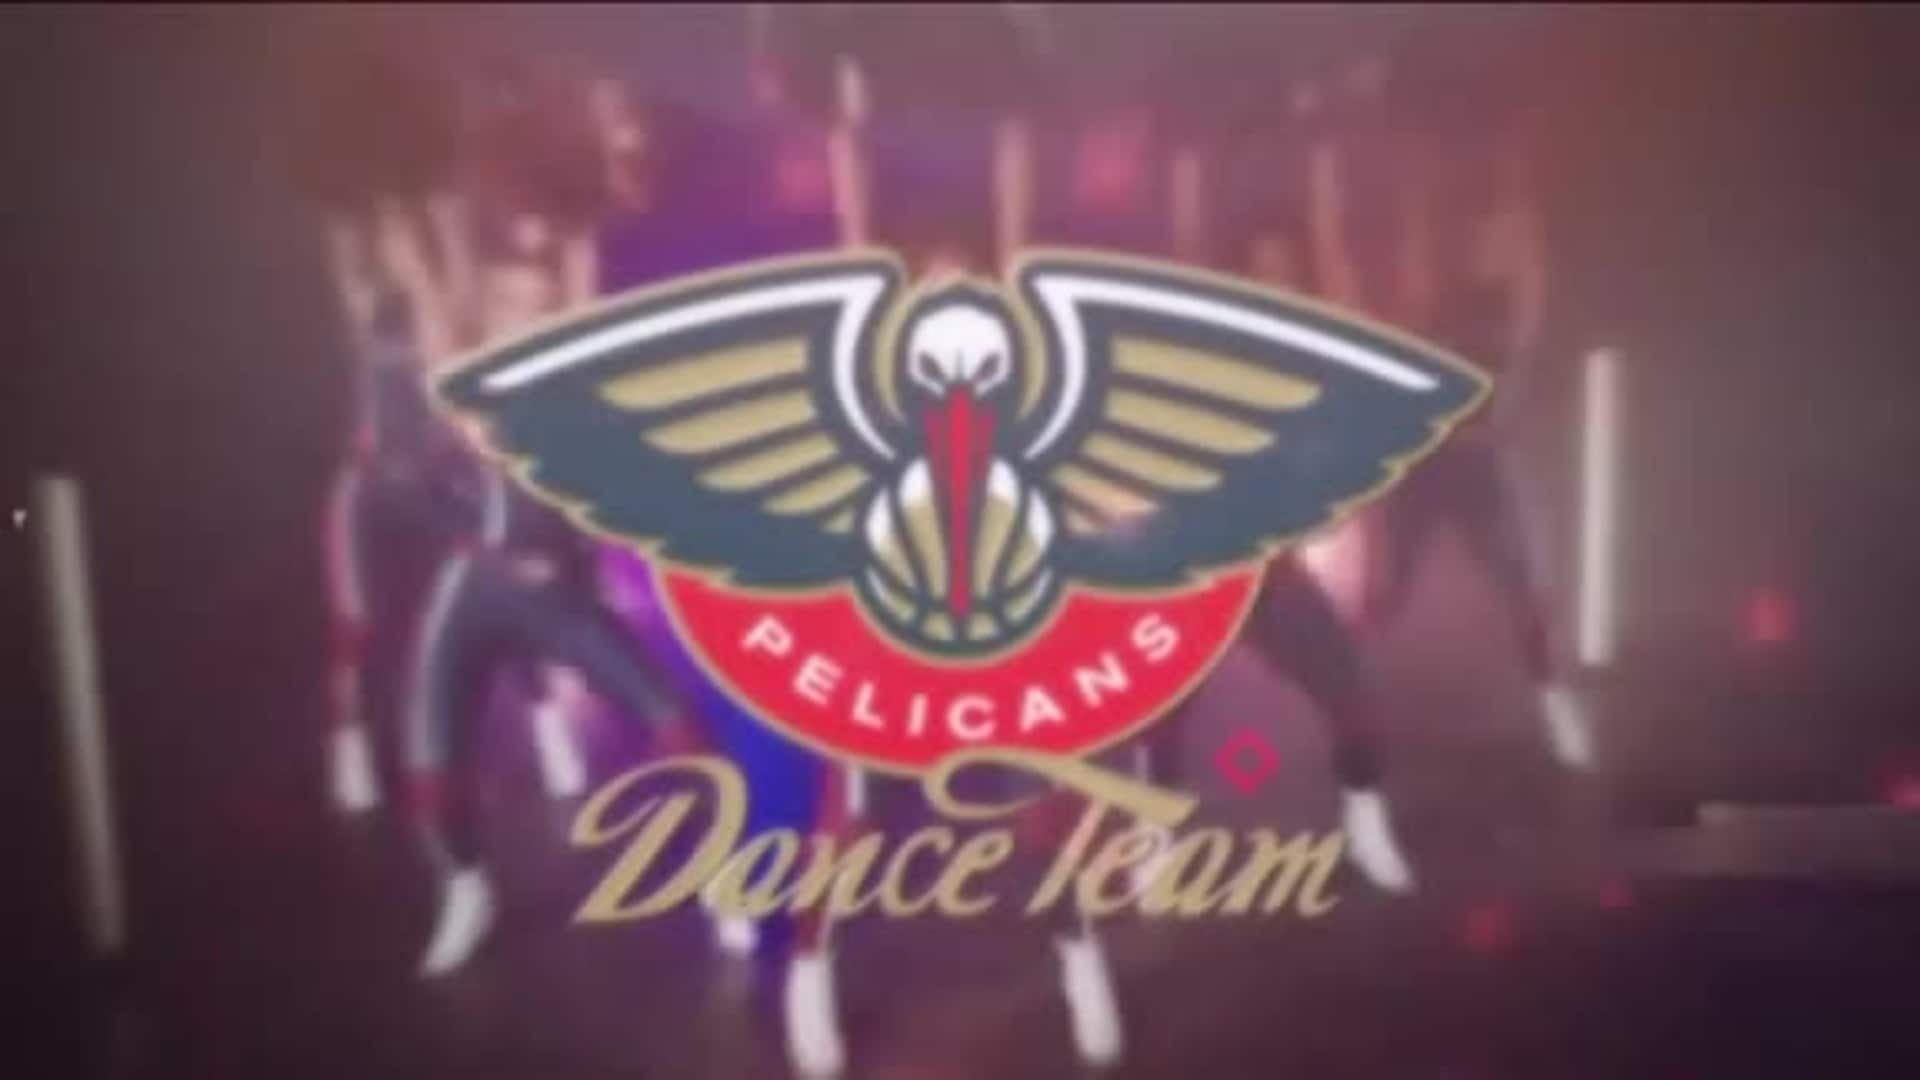 Entertainment: Pelicans Dance Team 2nd quarter performance - March 3 vs. Minnesota Timberwolves